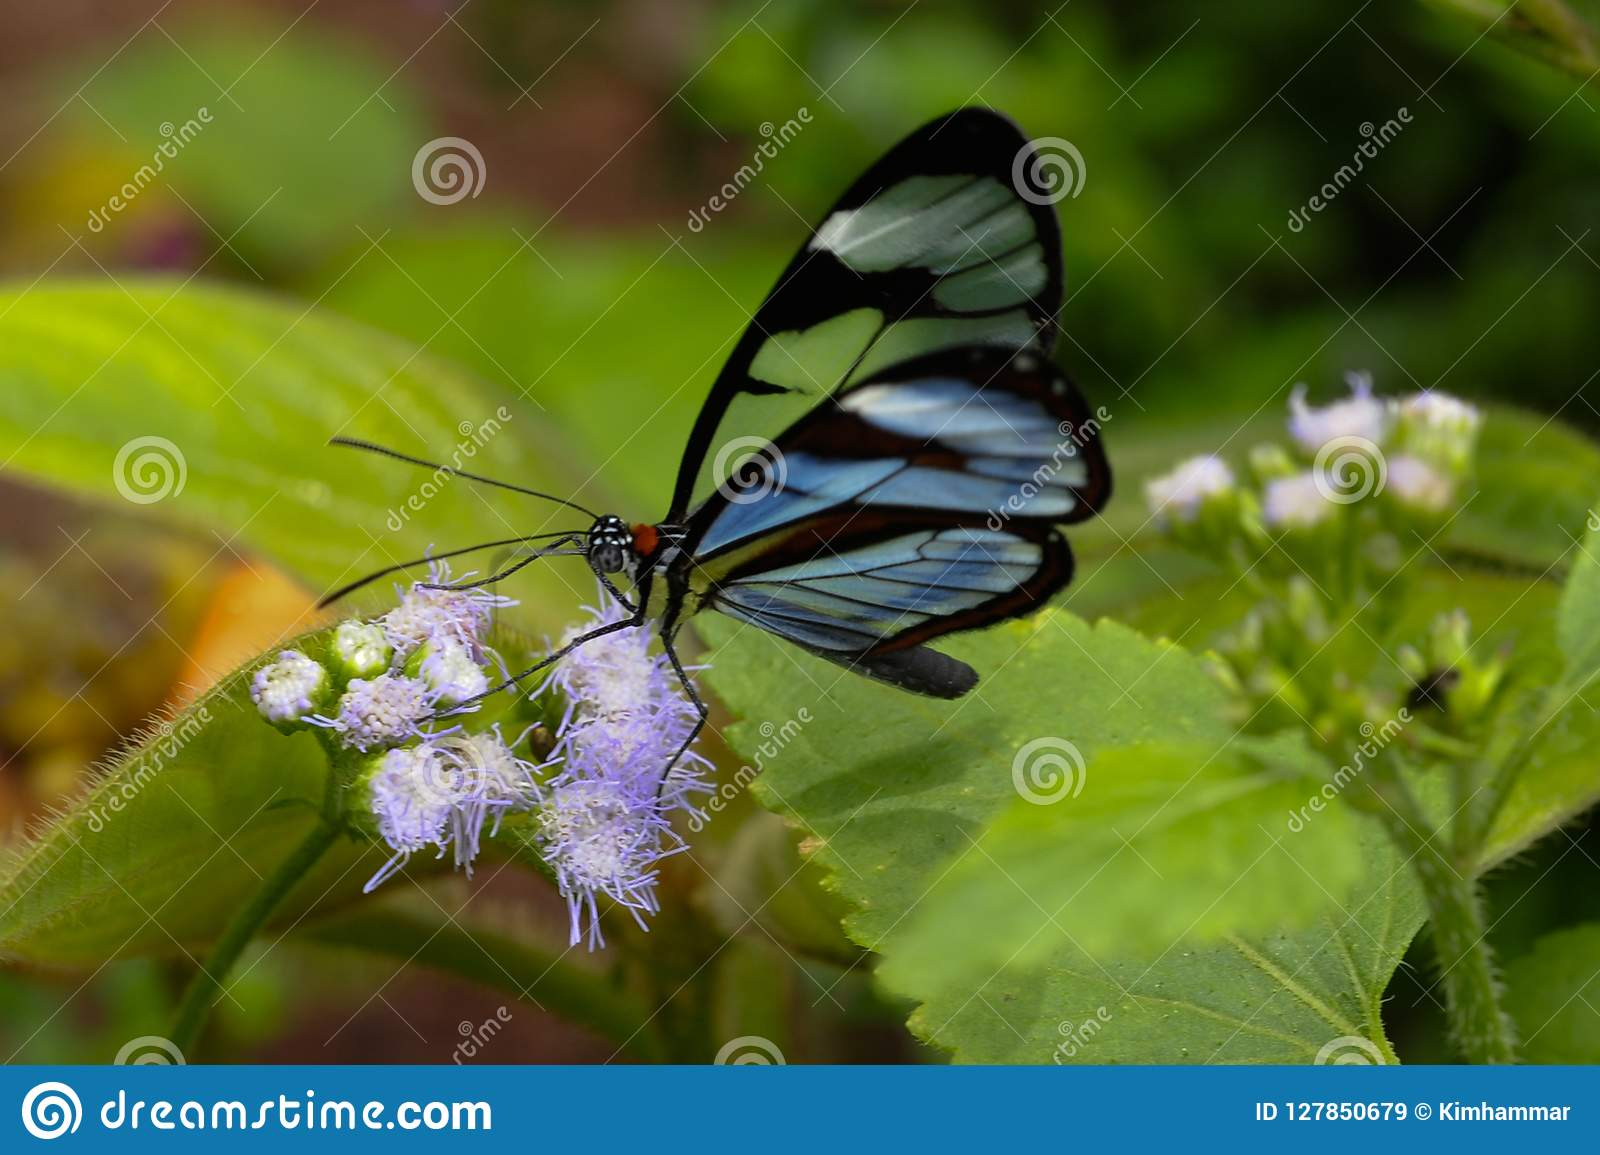 A Glasswinged Butterfly Feeds In A Costa Rican Garden Stock Image